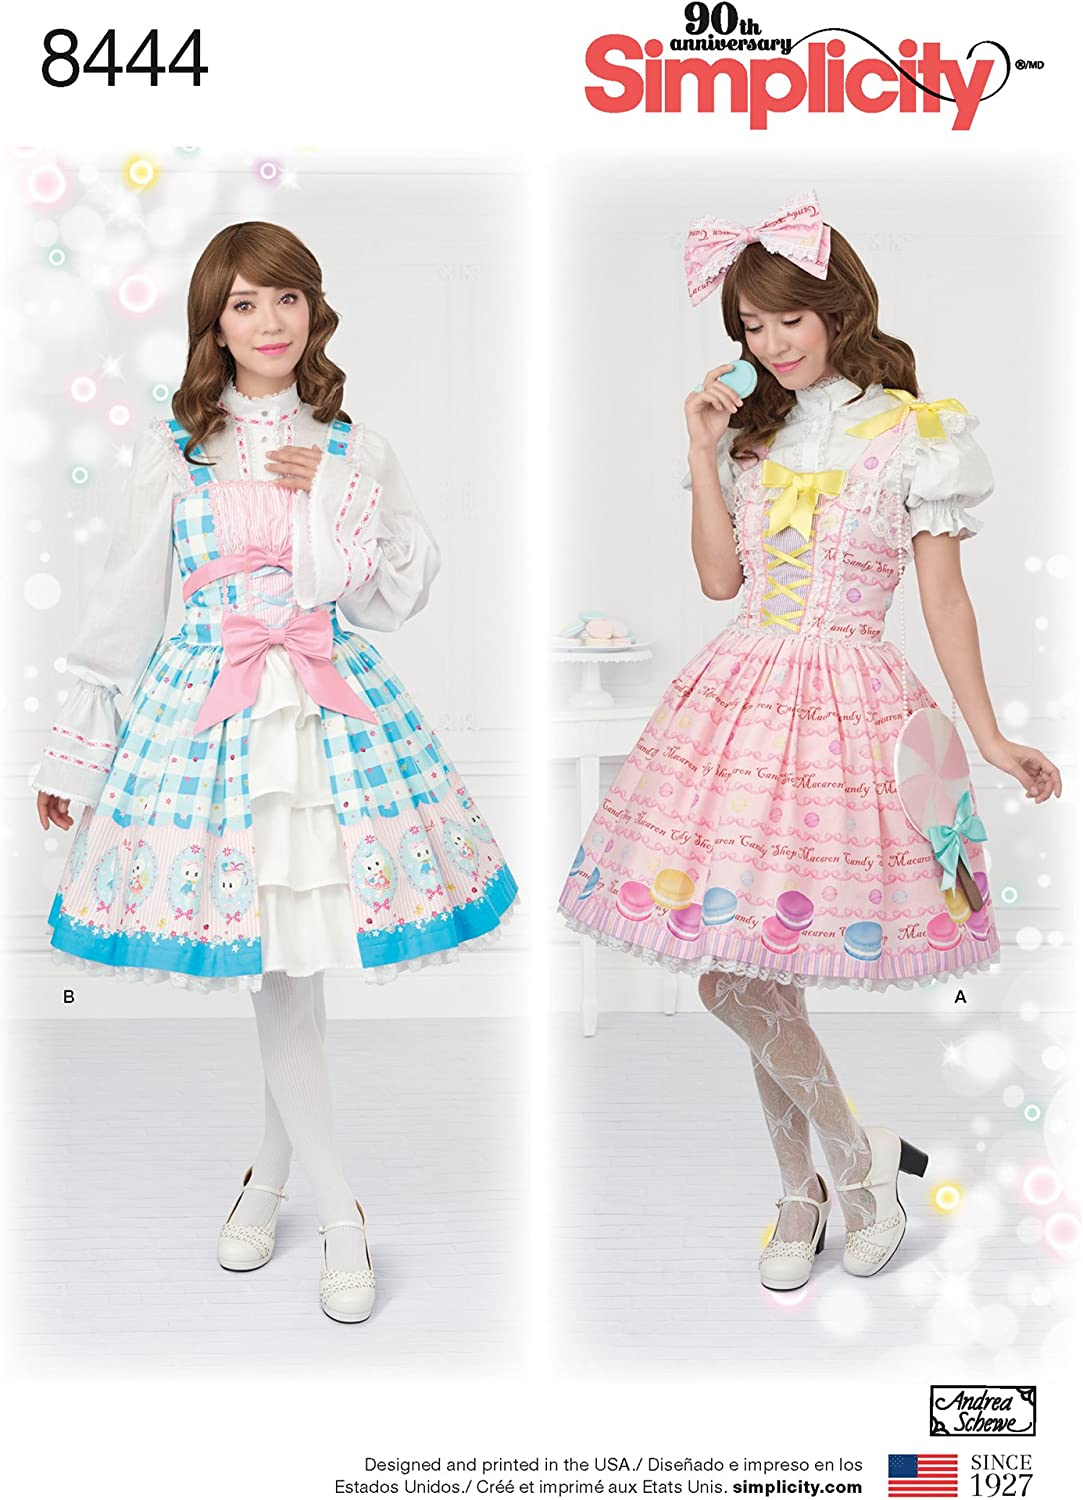 We OFFer Baltimore Mall at cheap prices Simplicity 8444 Women's Costume Dress Patterns Sewing Si Outfit